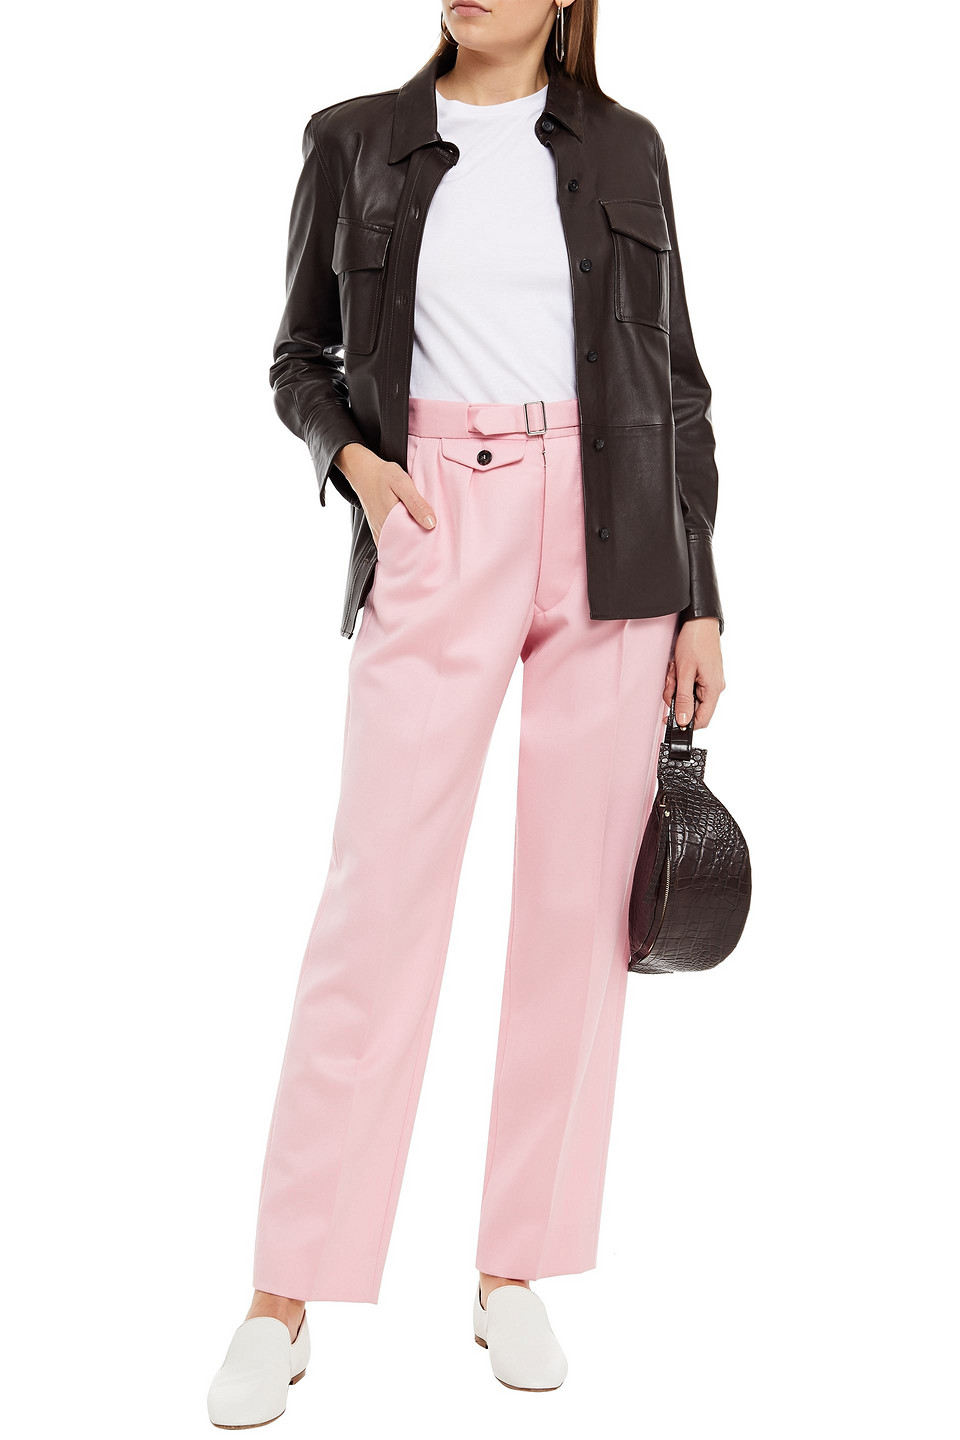 Maison Margiela | Maison Margiela Woman Belted Wool Tapered Pants Baby Pink | Clouty